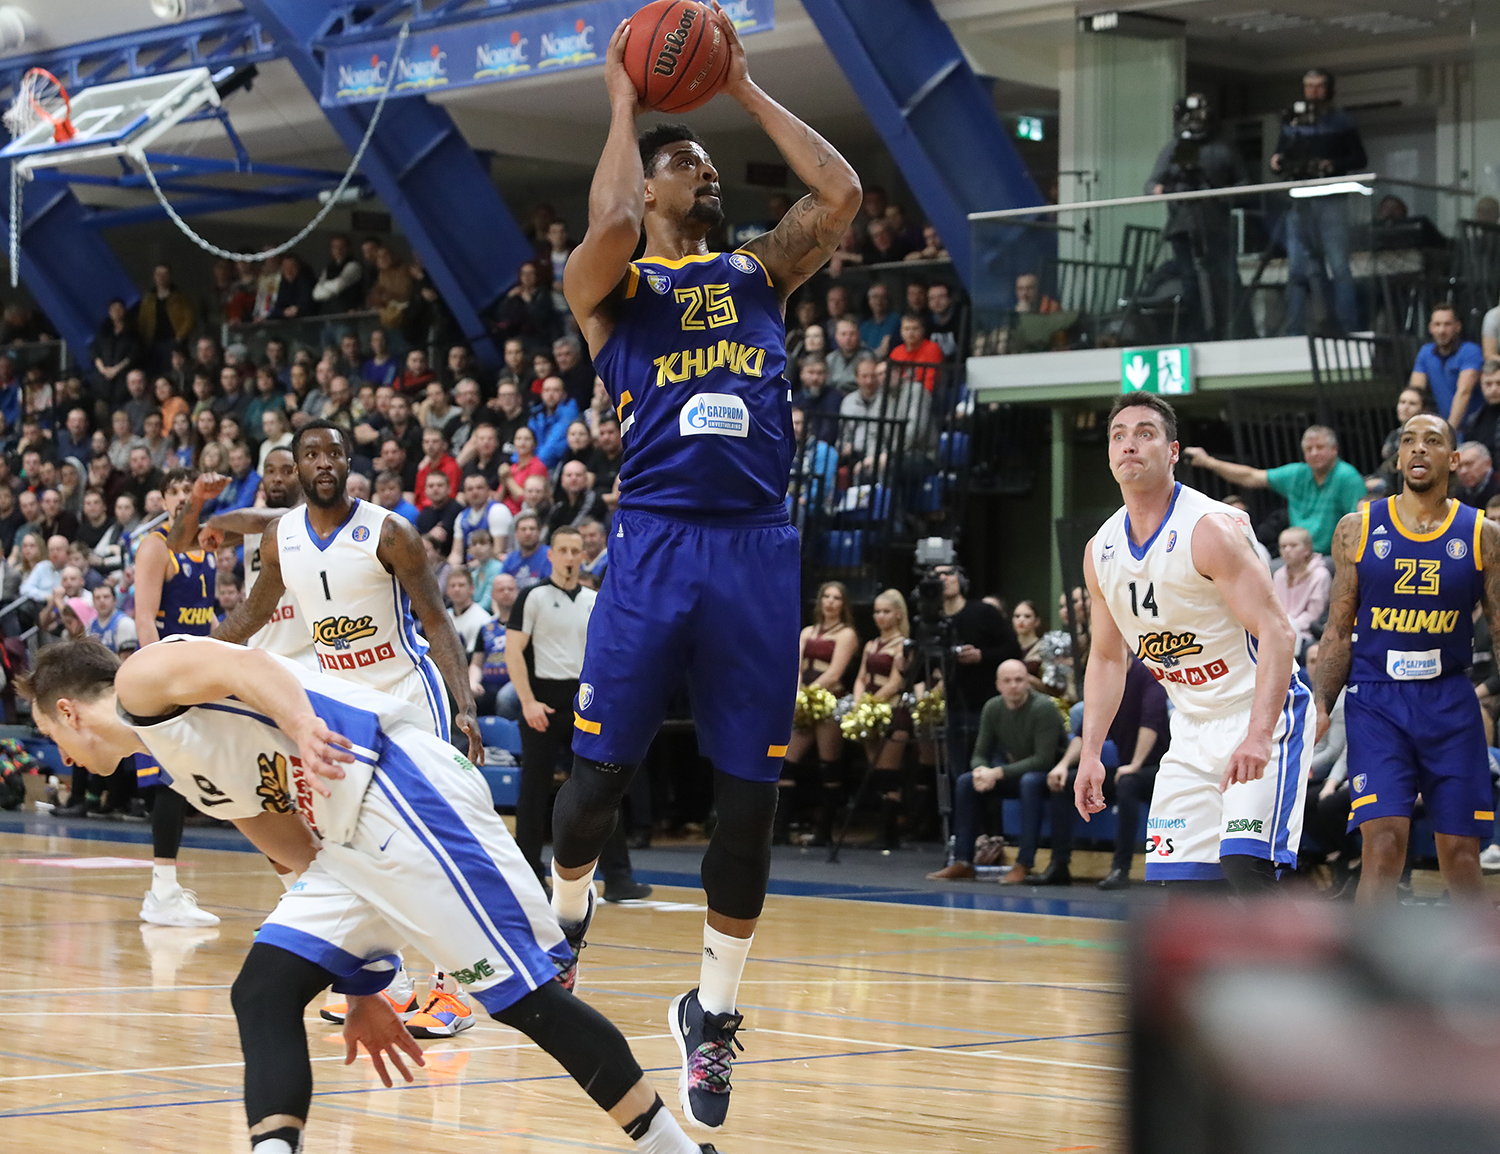 Khimki Crushes Kalev's Upset Hopes, Regains 3rd Place